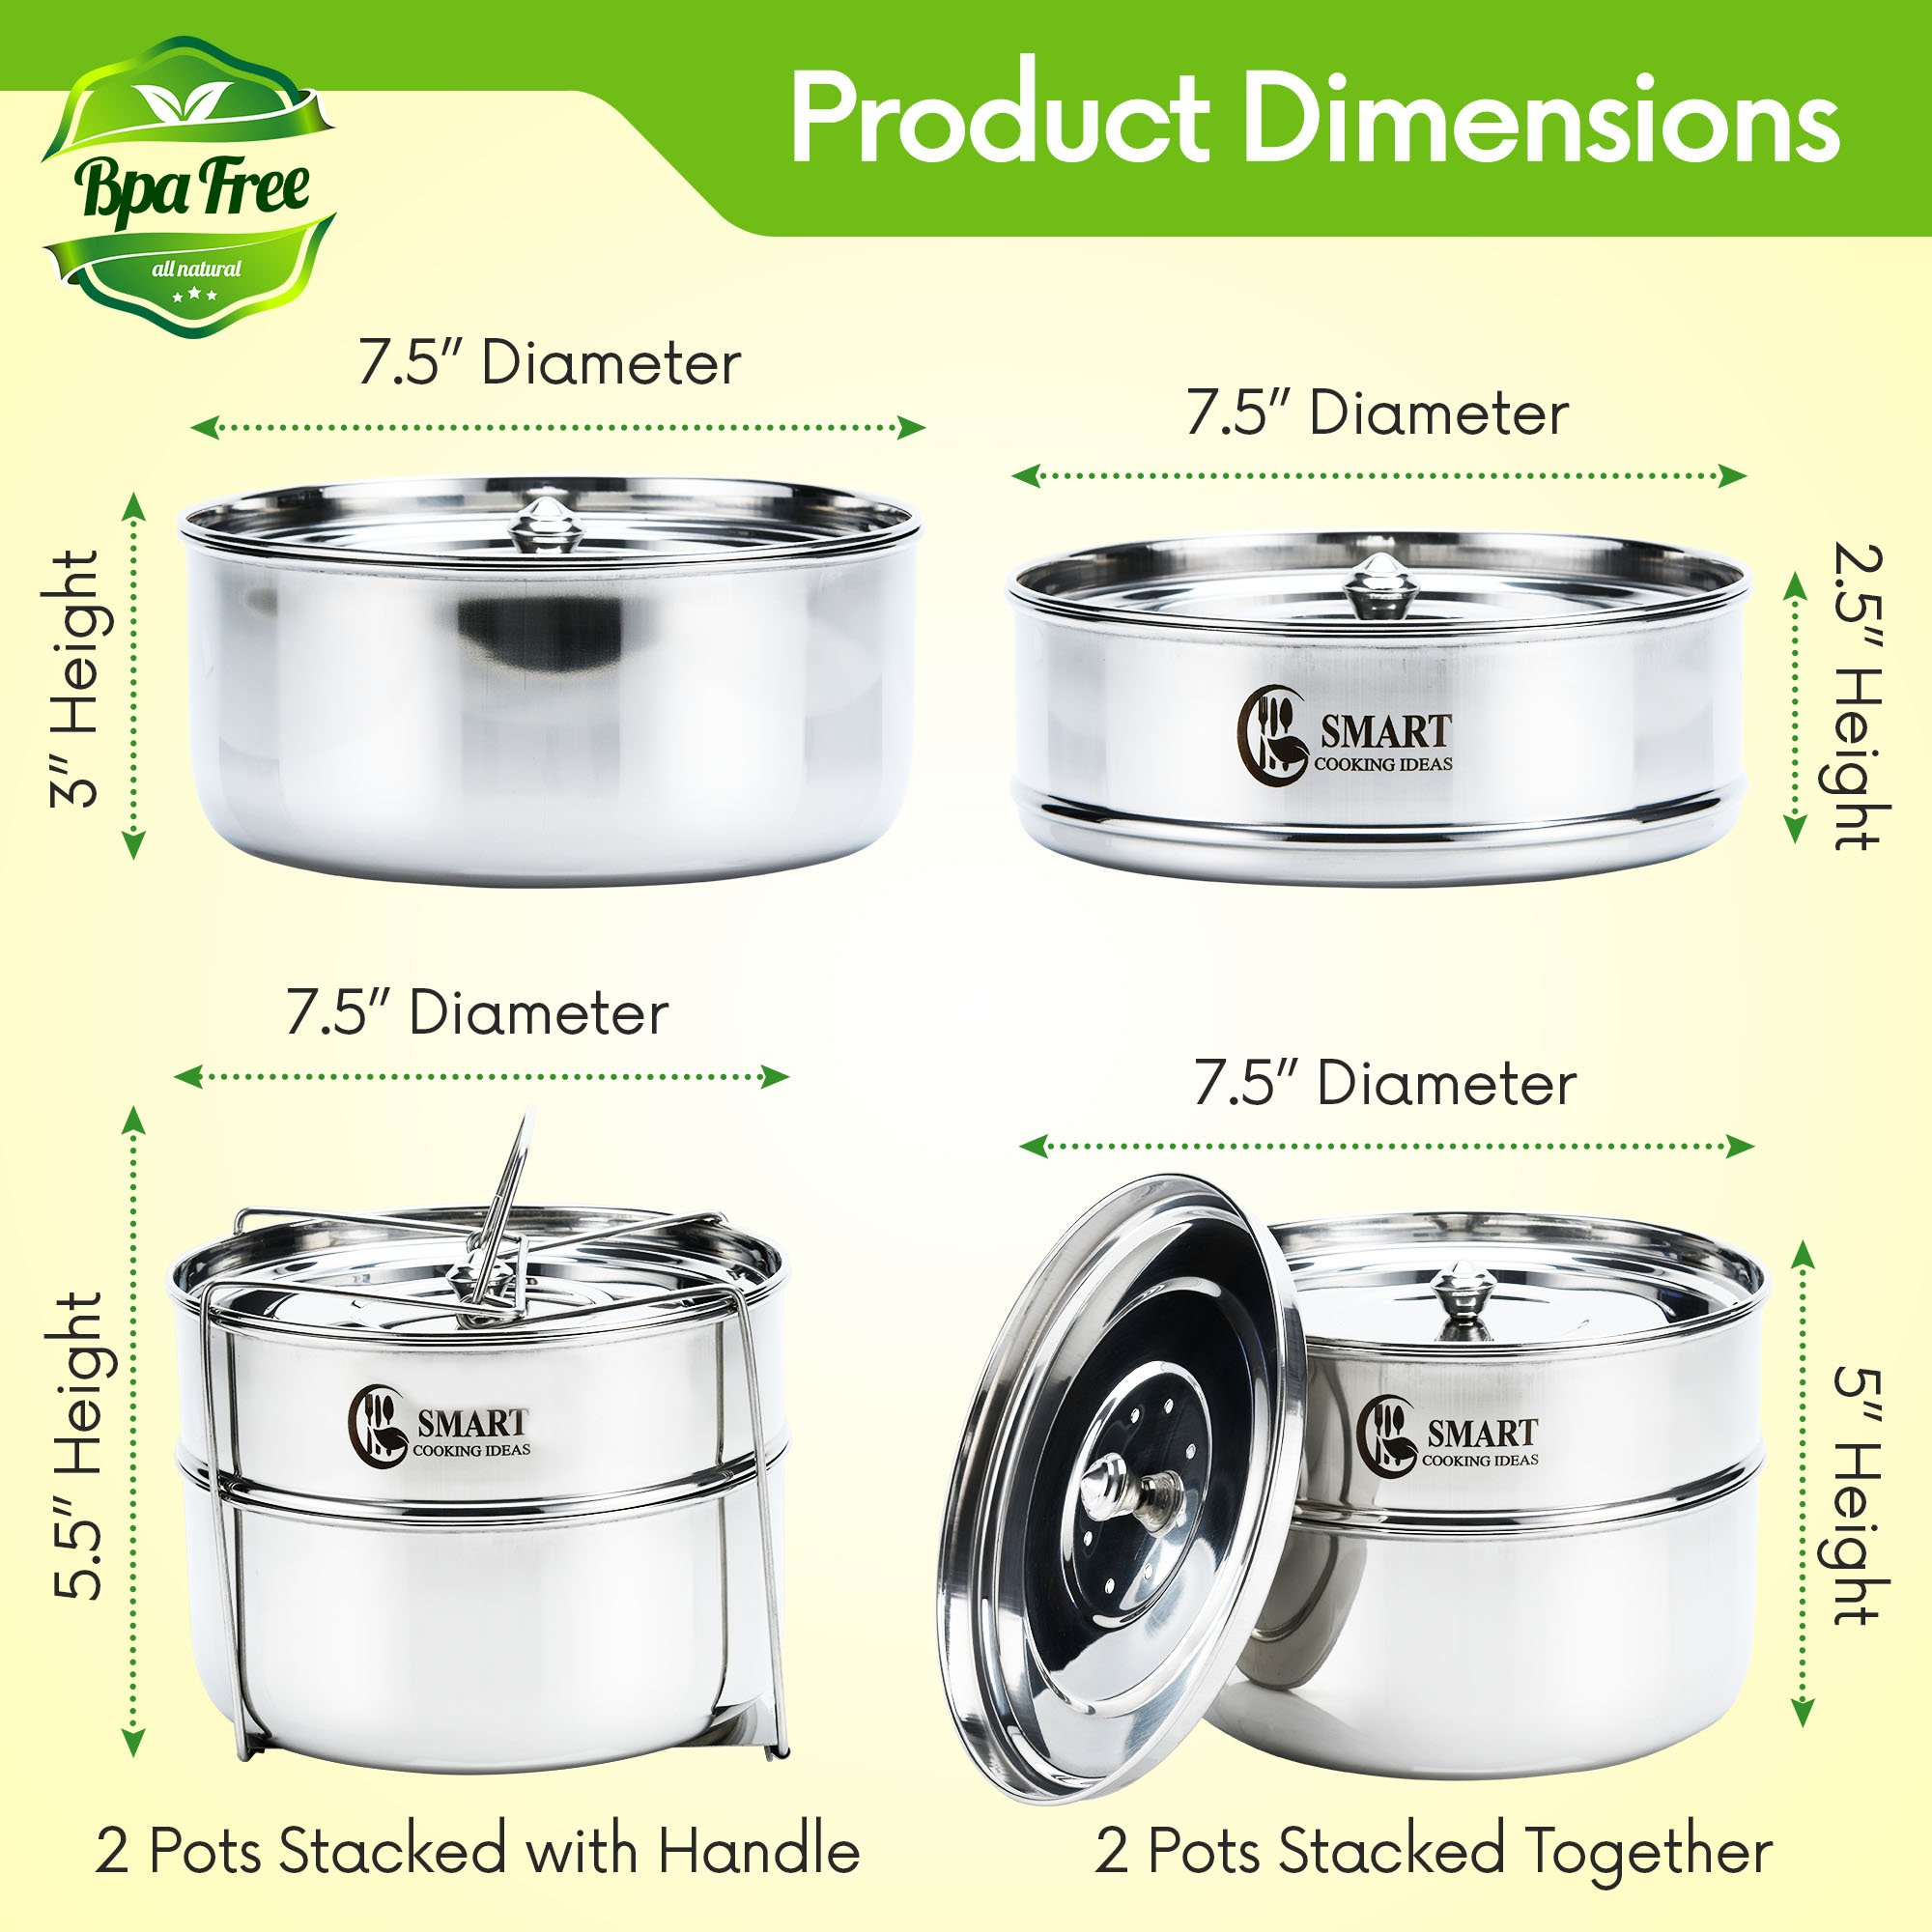 Stackable Stainless Steel Pressure Cooker Steamer Insert Pans with sling - For Instant Pot Accessories 6,8 qt-Baking, Casseroles, Lasagna Pans, Food Cooker, Upgraded Interchangeable Lid-Instapot Pans by SMART COOKING IDEAS (Image #2)